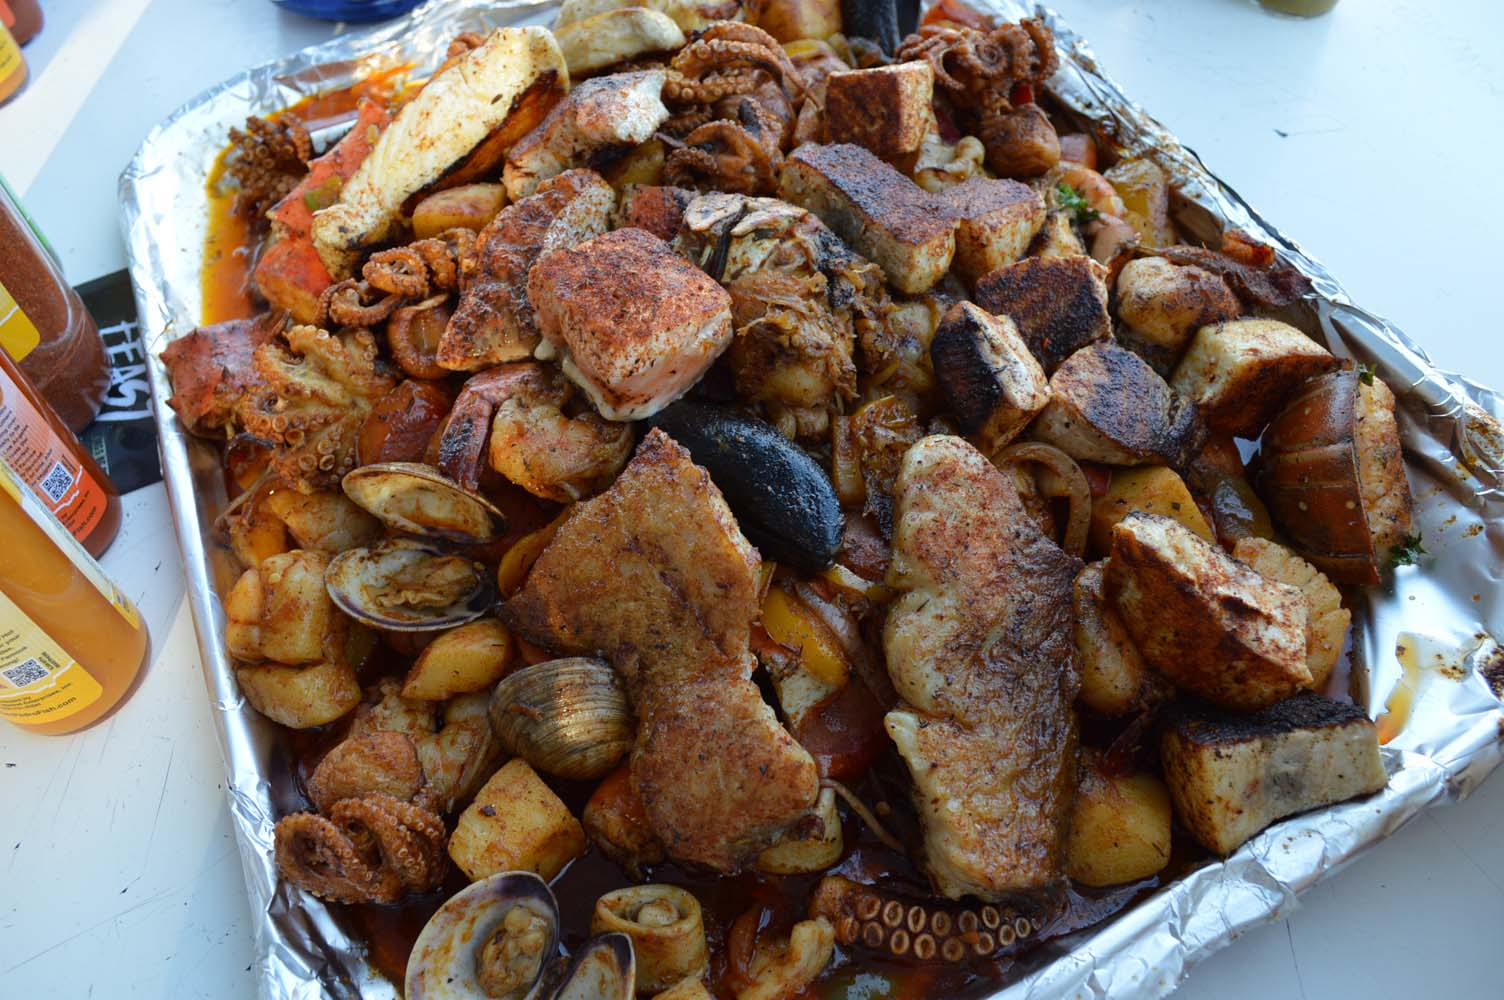 San pedro fish market all the best fish in 2017 for San pedro fish market super tray